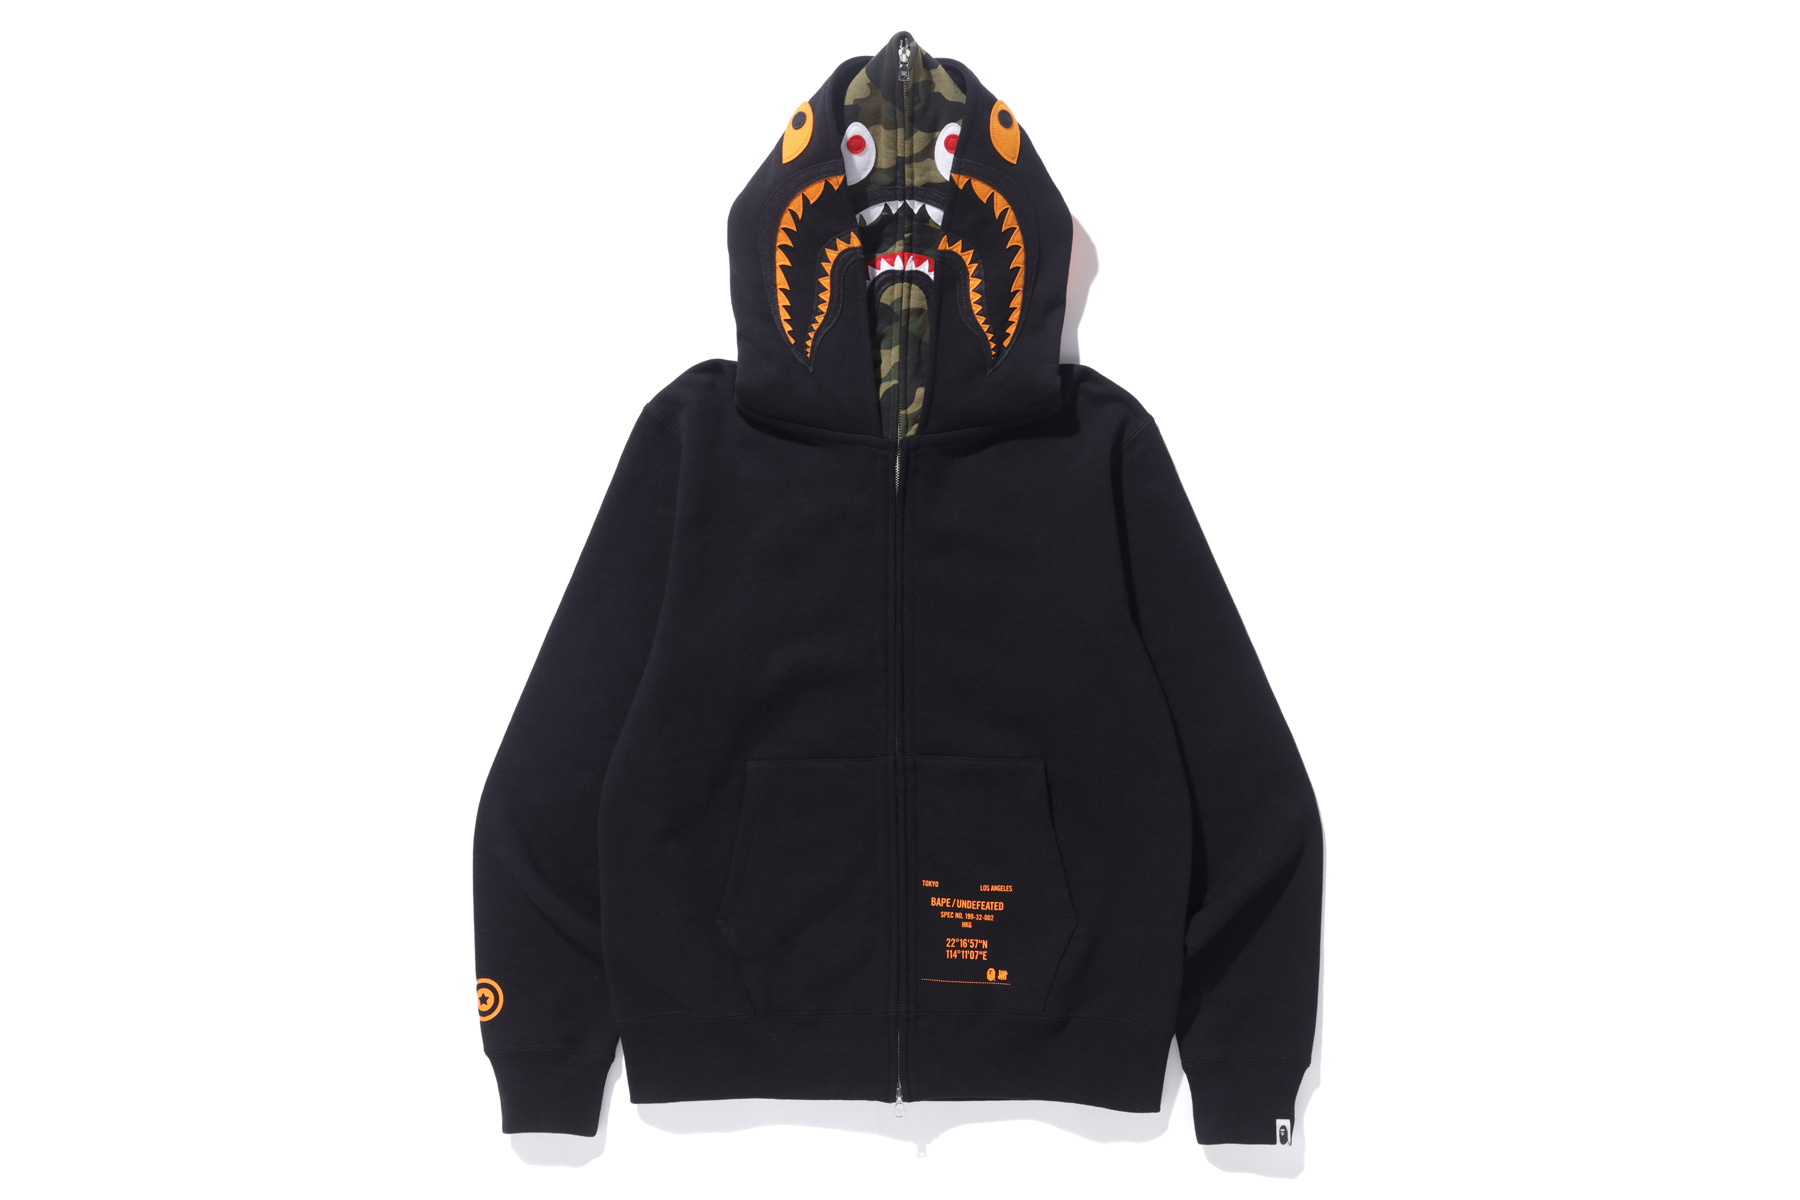 UNDEFEATED x BAPE Exclusive Hong Kong Capsule